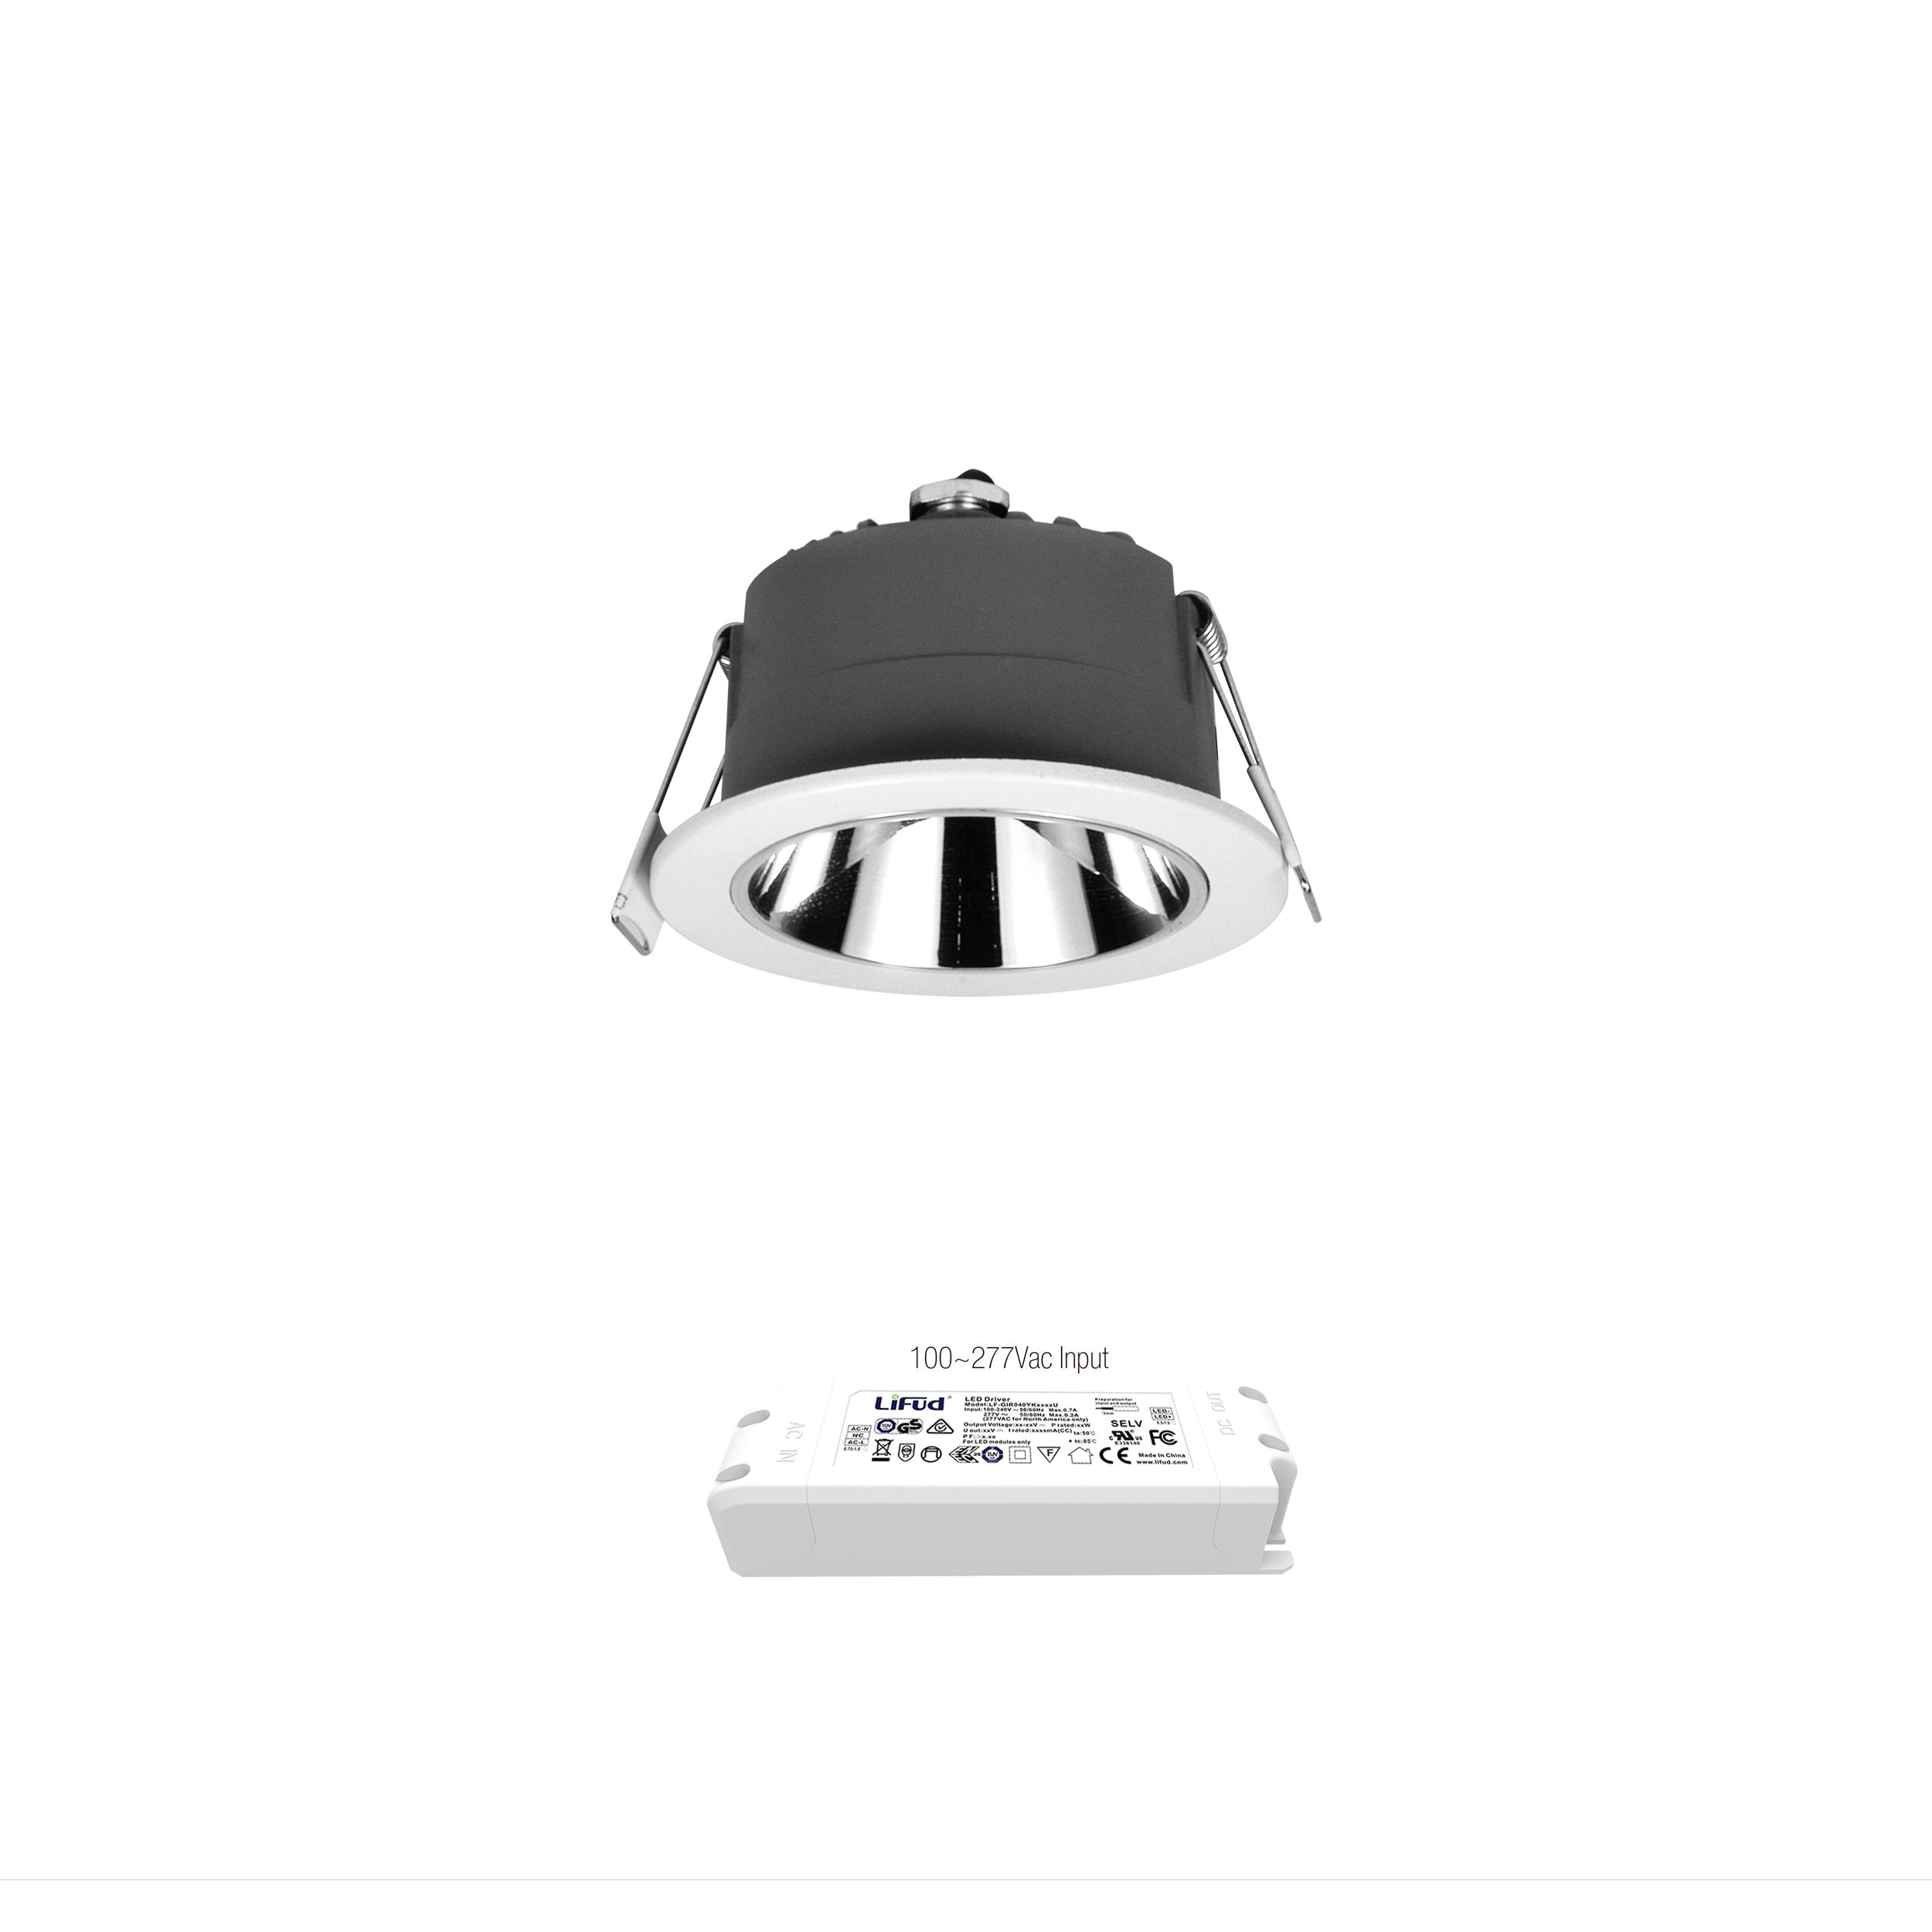 RD3003-0310A1 Round LED Downlight  ceiling recessed downlight led down light Best Price